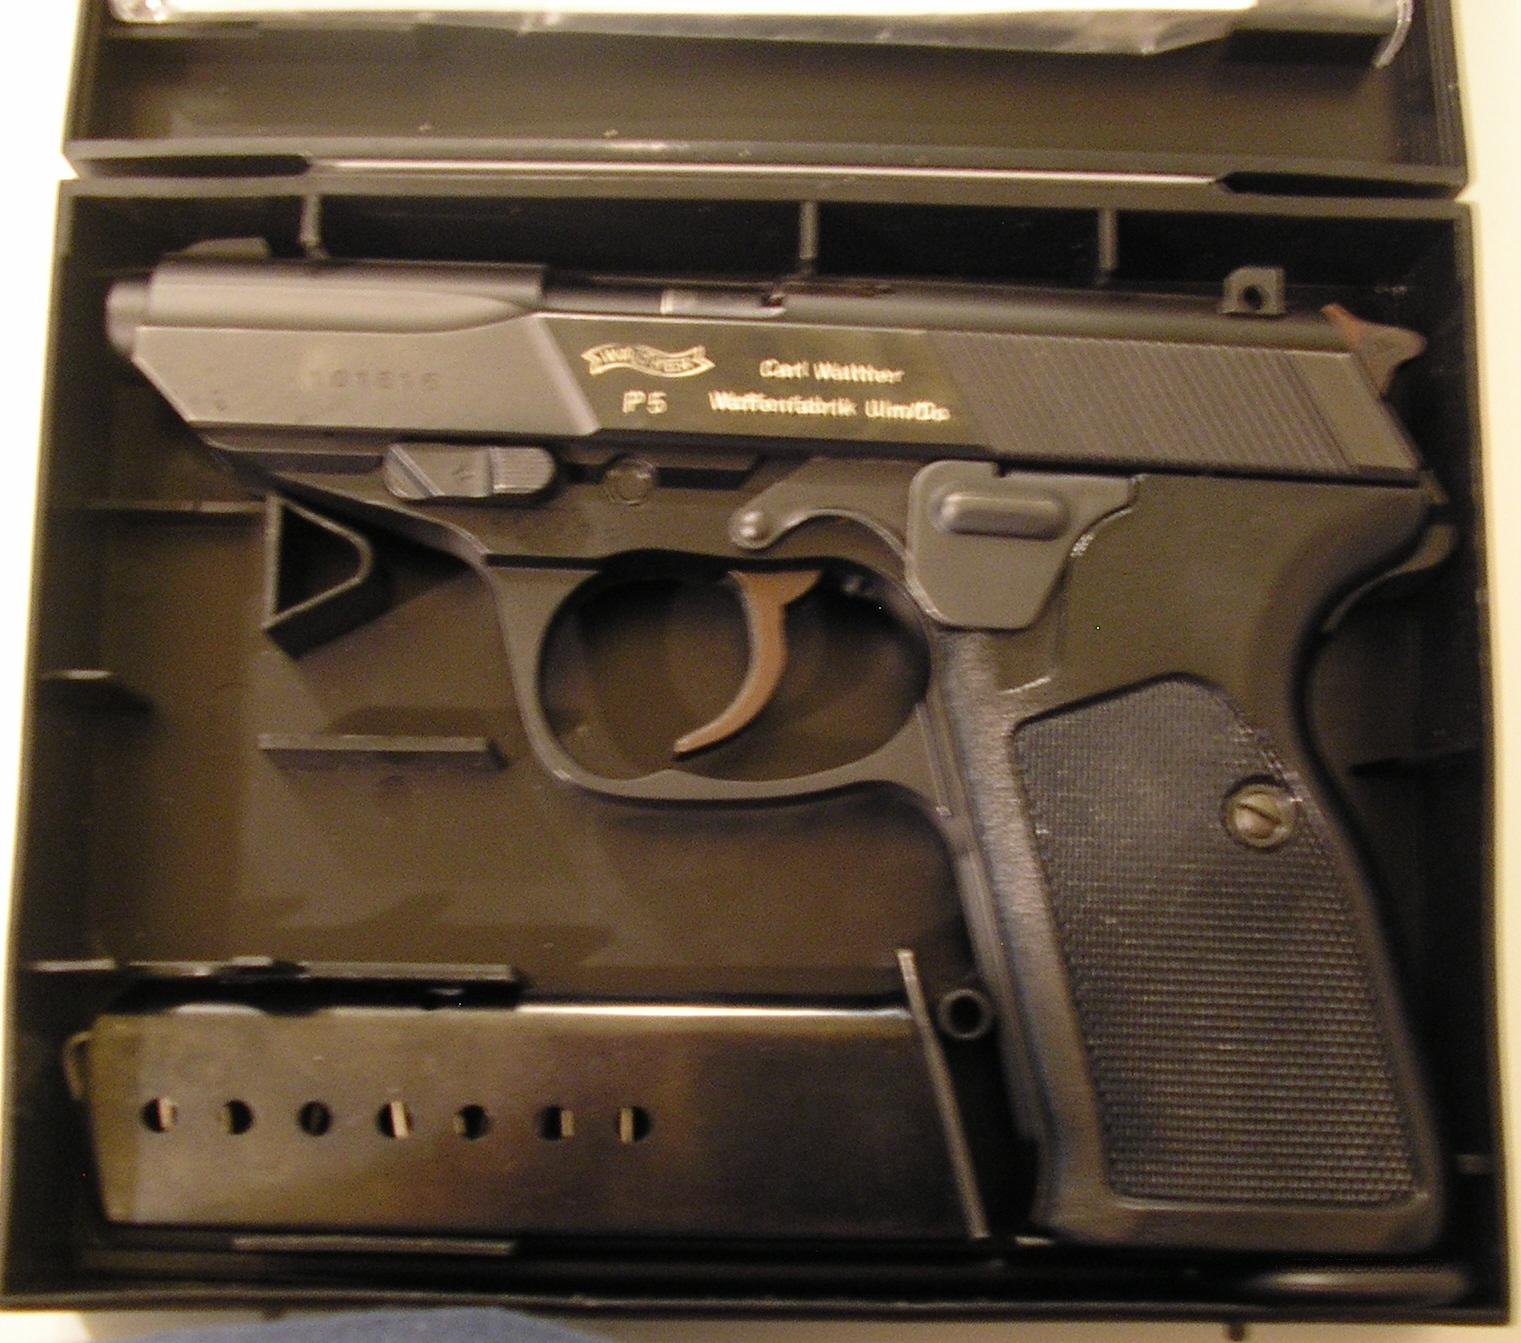 WALTHER P5 SEMI AUTO 9MM PISTOL  Guns > Pistols > Walther Pistols > Post WWII > Large Frame Autos